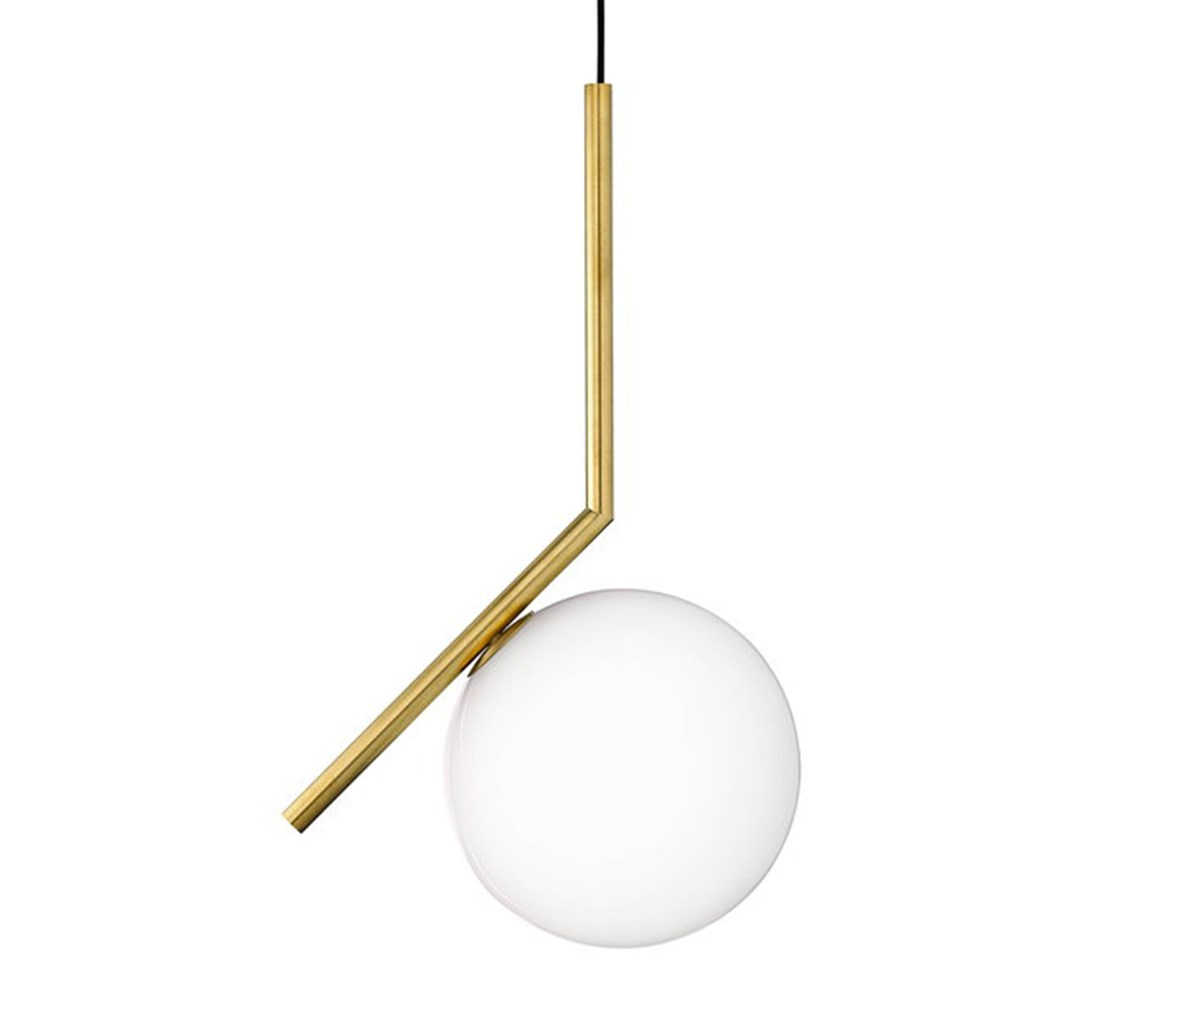 Flos IC Lights S1 -riippuvalaisin messinki, K 47 x ø 20 cm